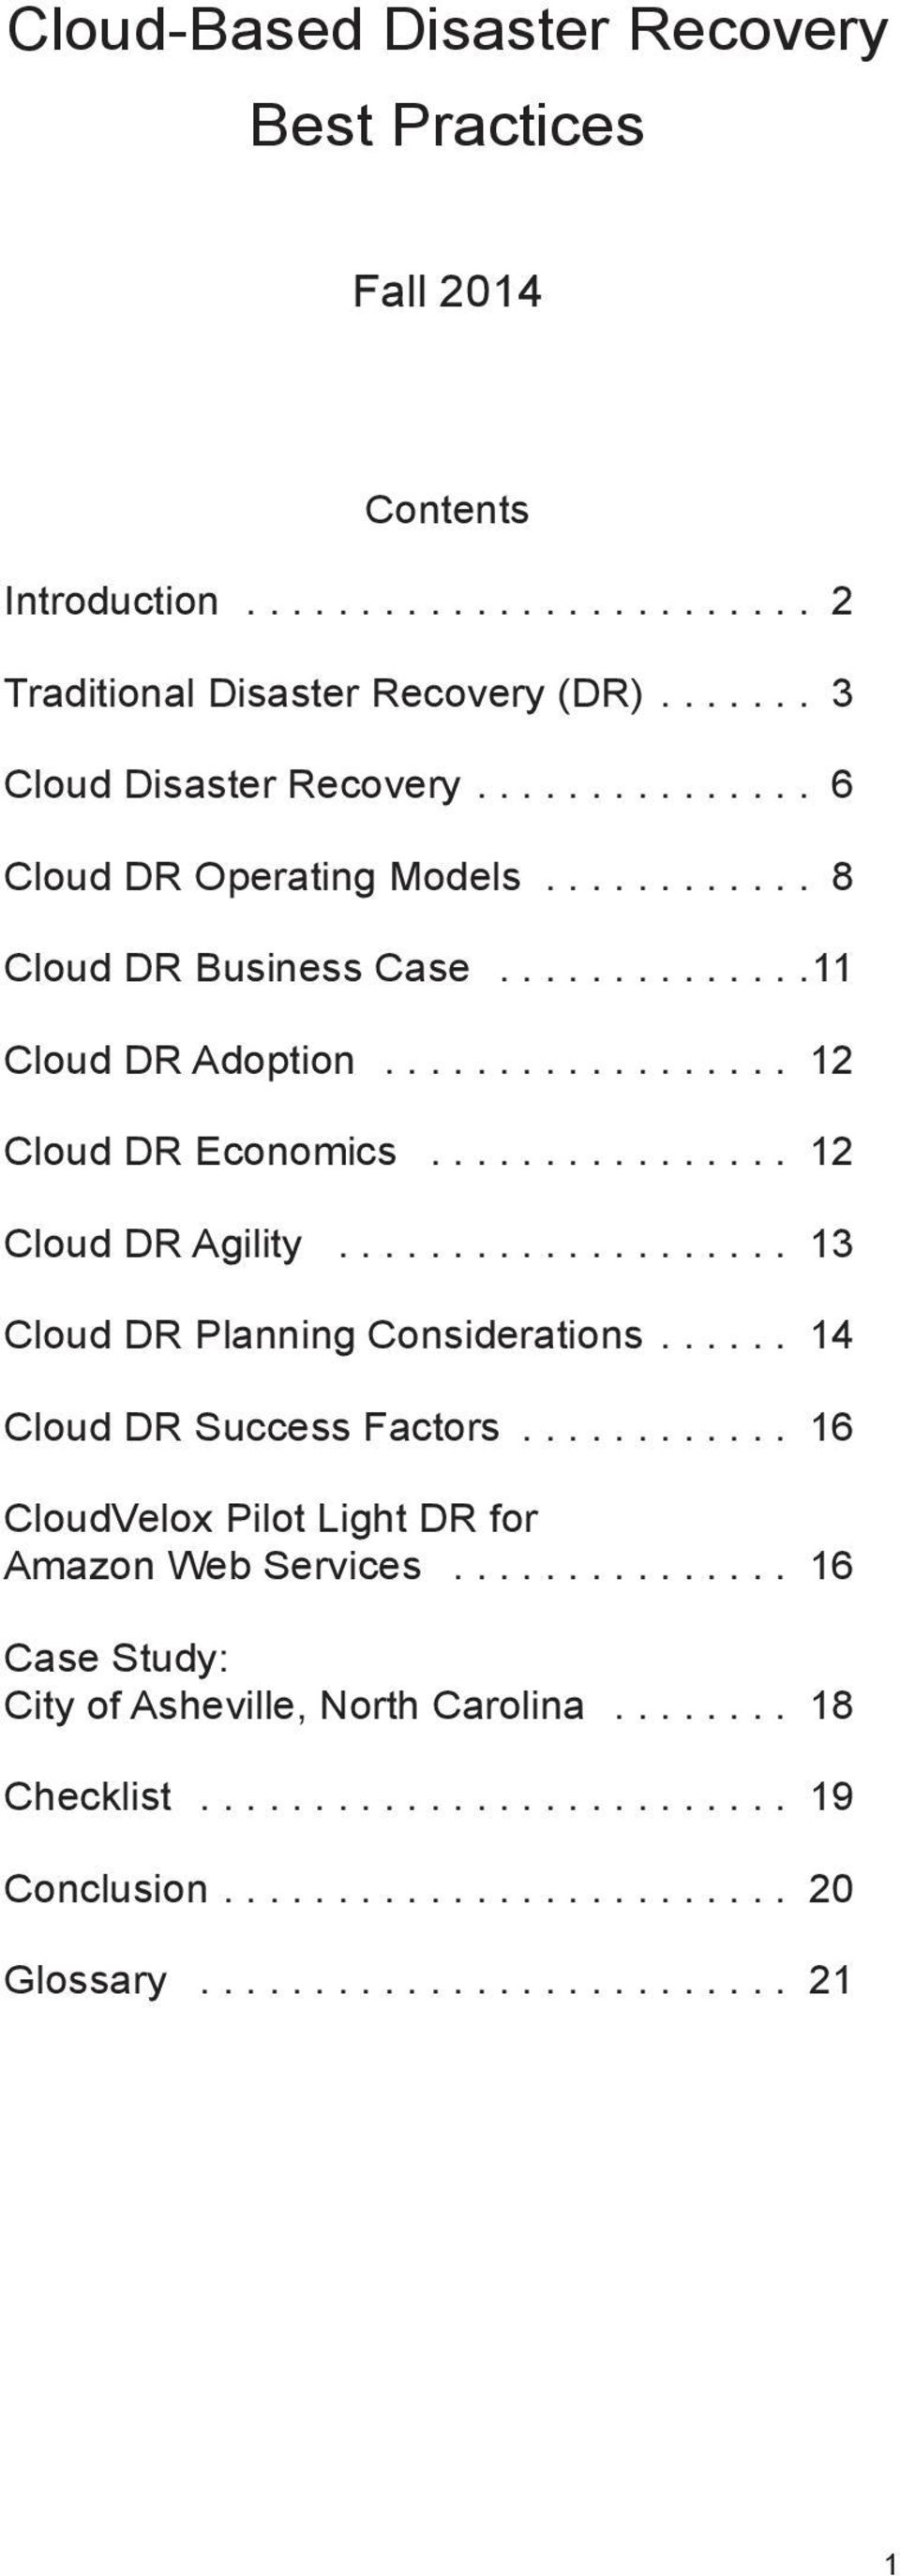 ................... 13 Cloud DR Planning Considerations...... 14 Cloud DR Success Factors............ 16 CloudVelox Pilot Light DR for Amazon Web Services.